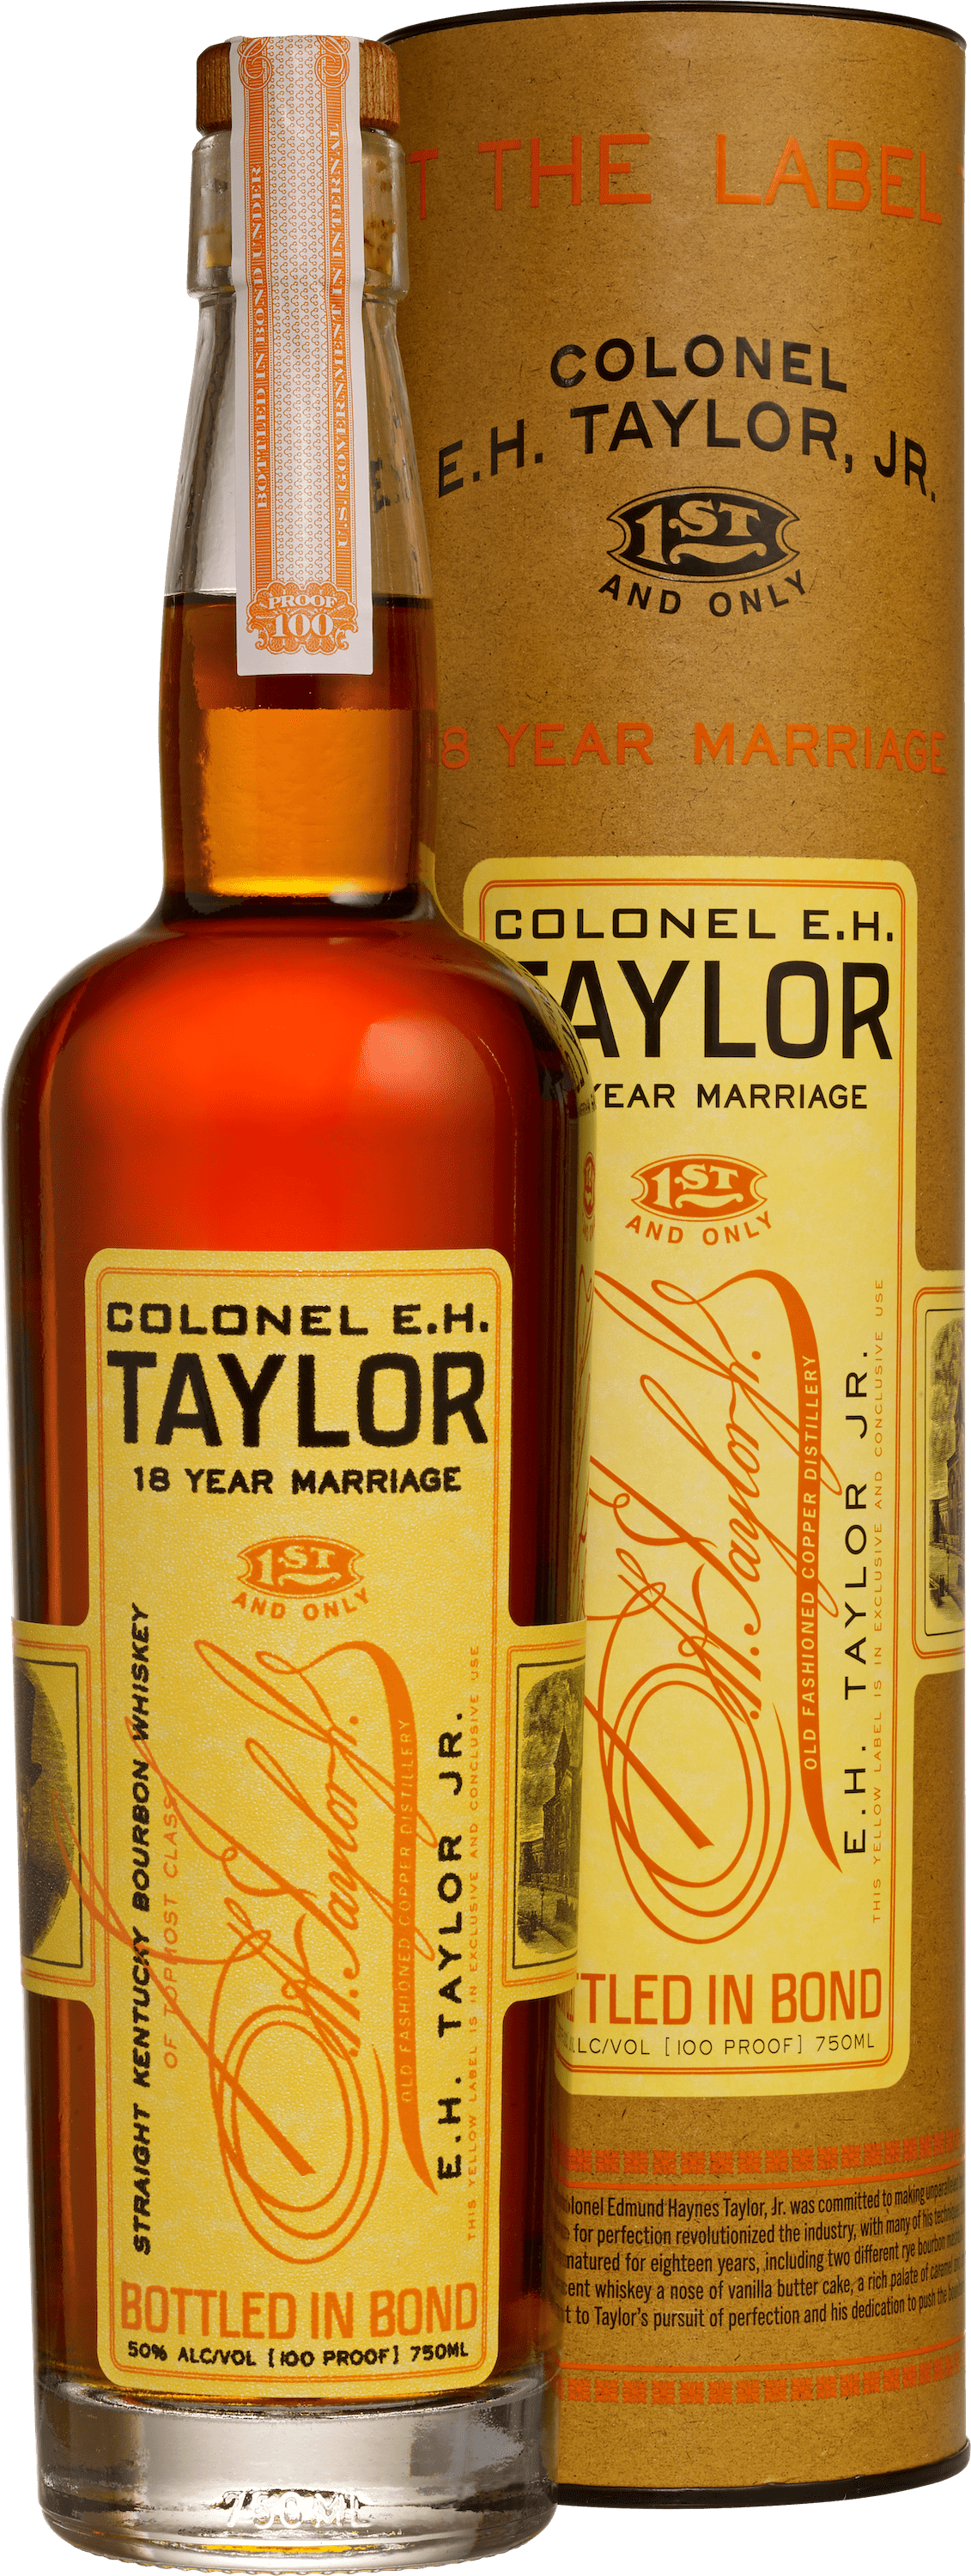 EH Taylor 18yr Marriage bottle with canister